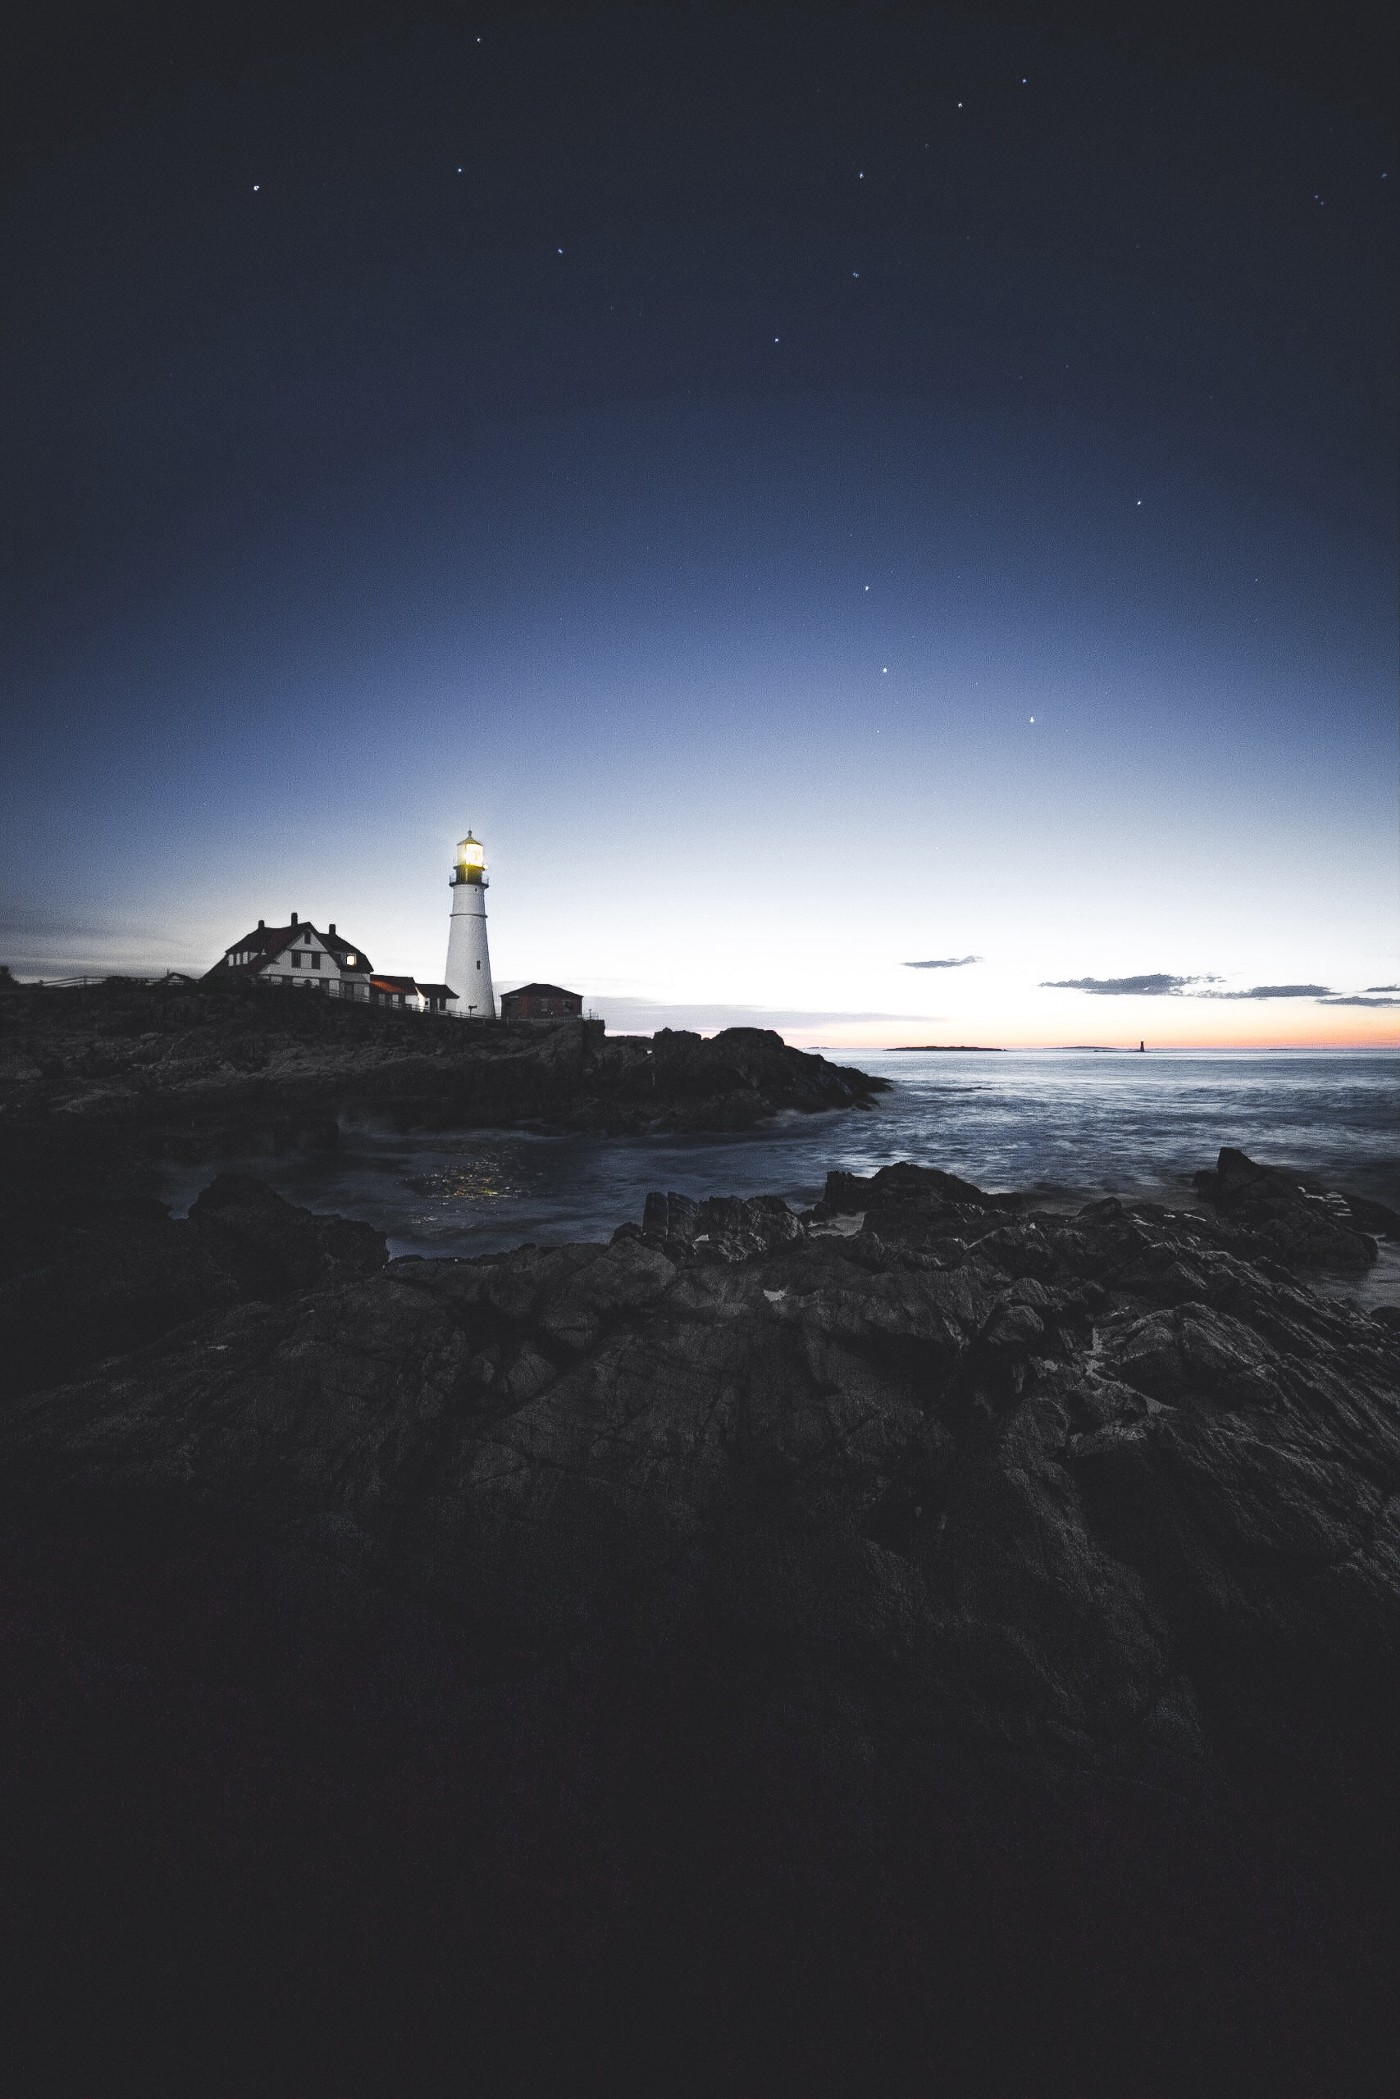 A lighthouse exudes a soft beam as dusk approaches against the backdrop of a dark, rocky ocean.